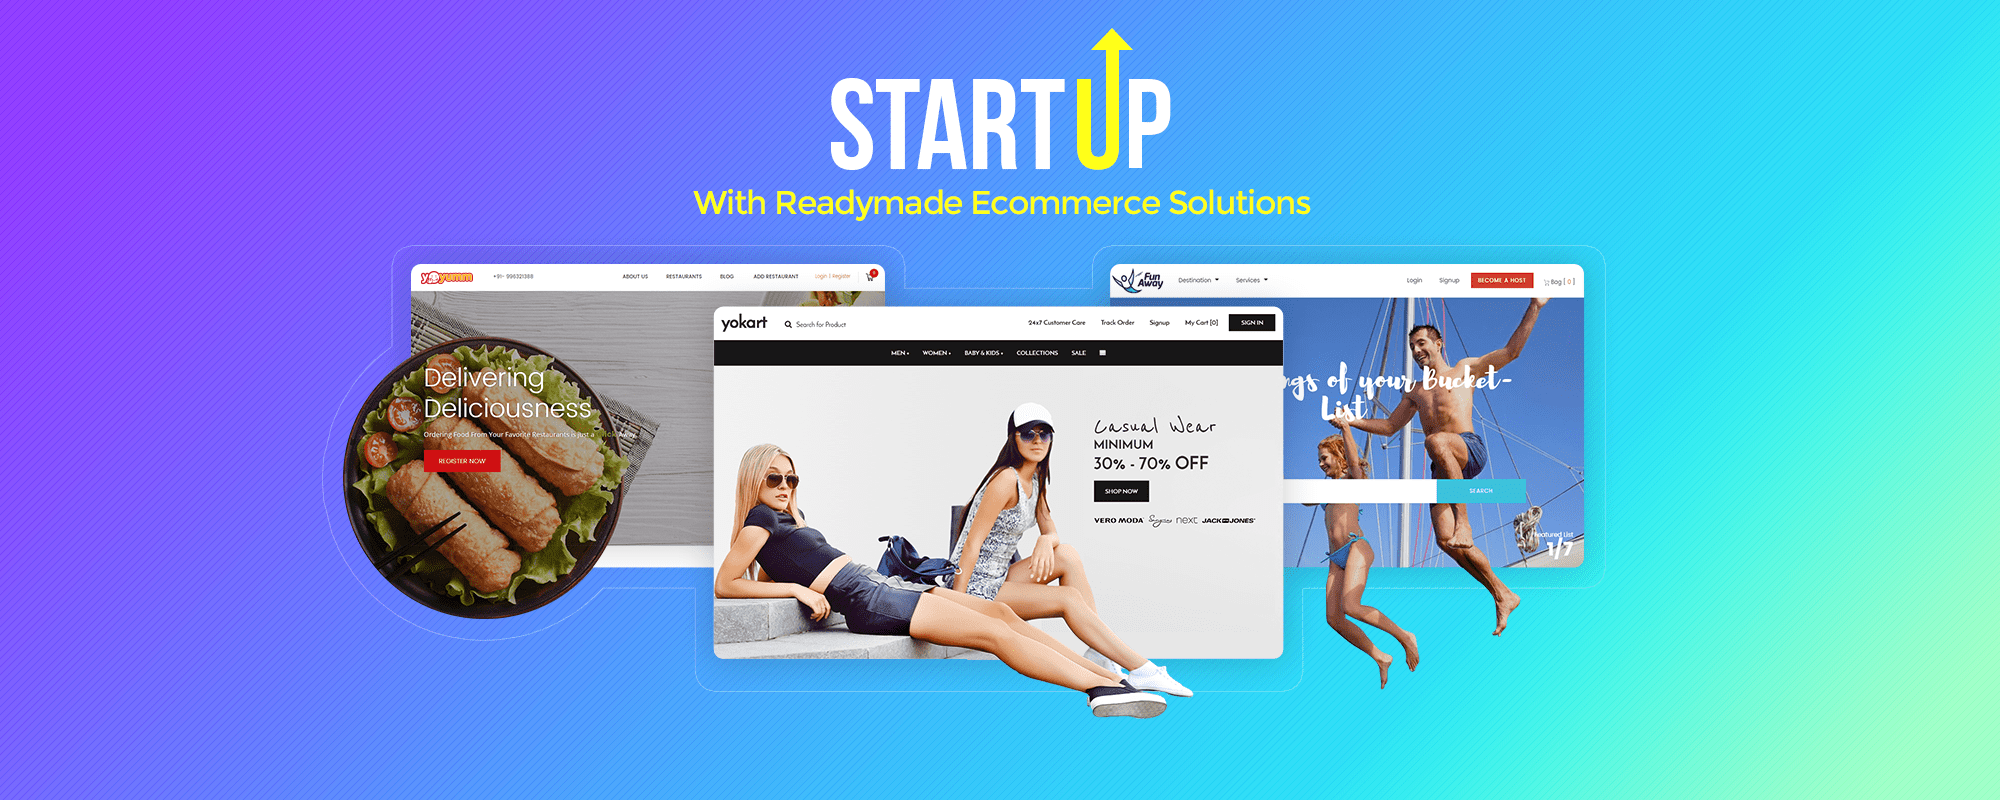 Start Your Online Business With These Ready-Made Ecommerce Systems